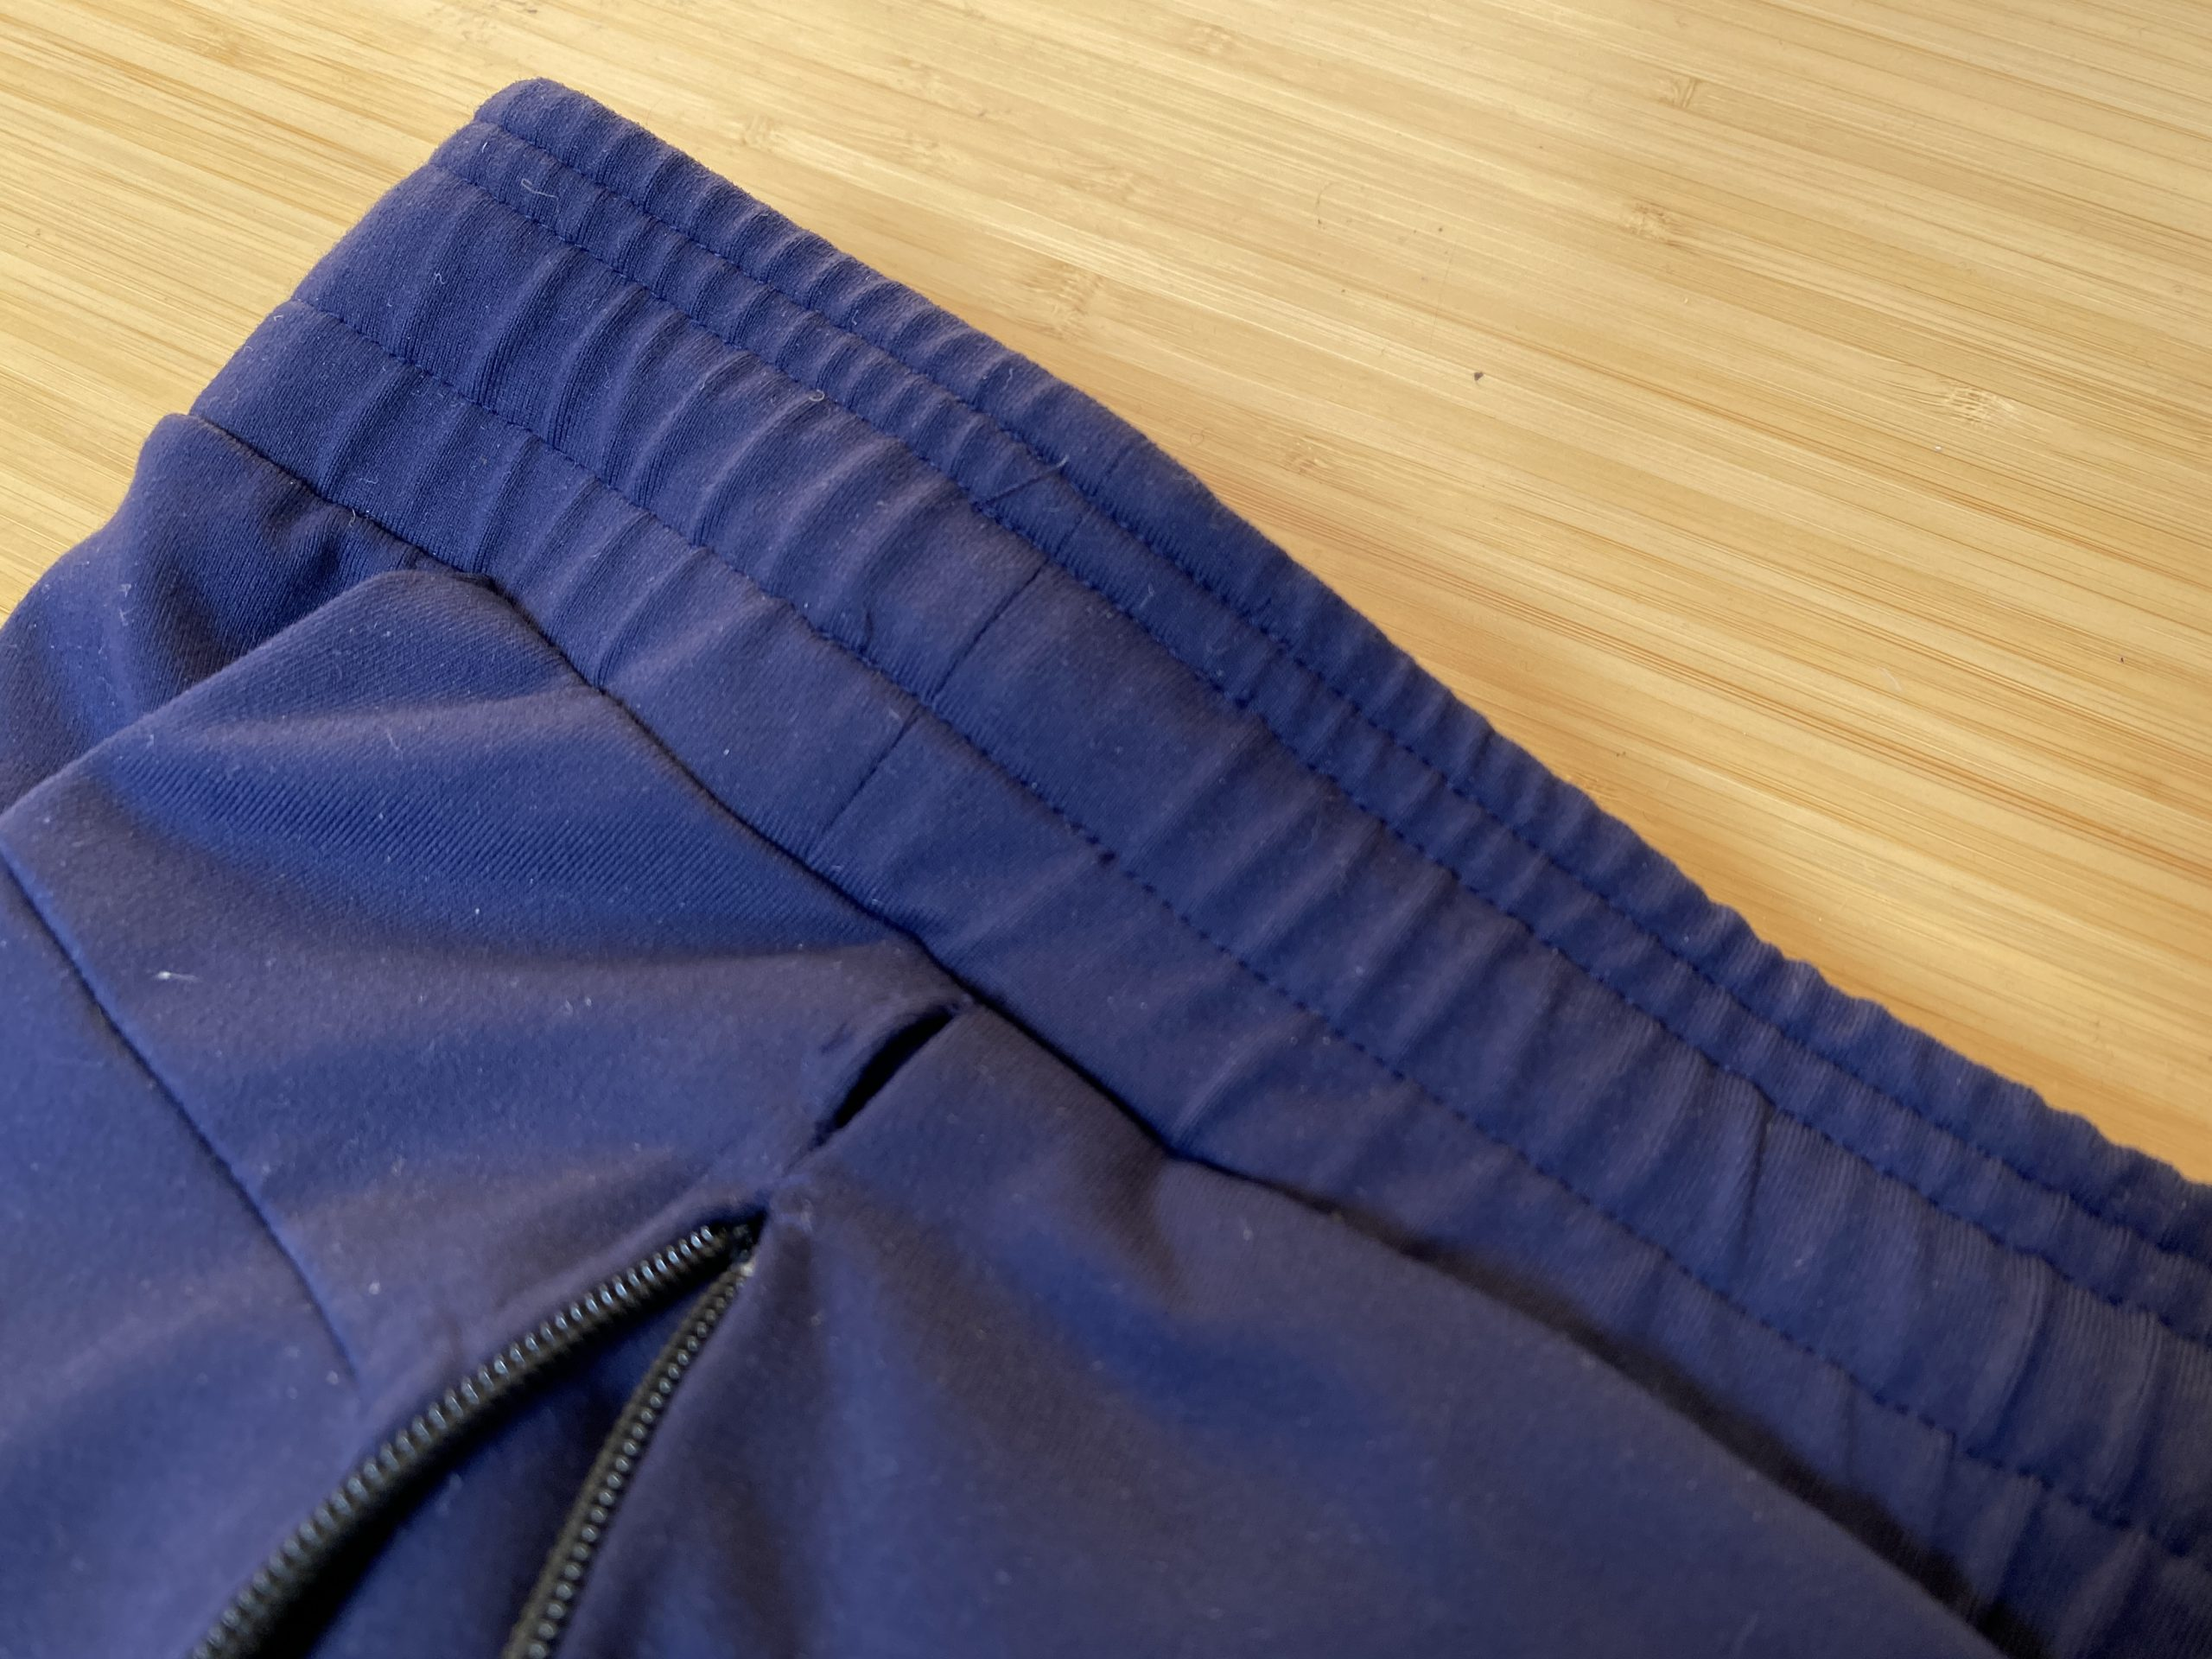 All Day Every Day Pant Seam Splitting